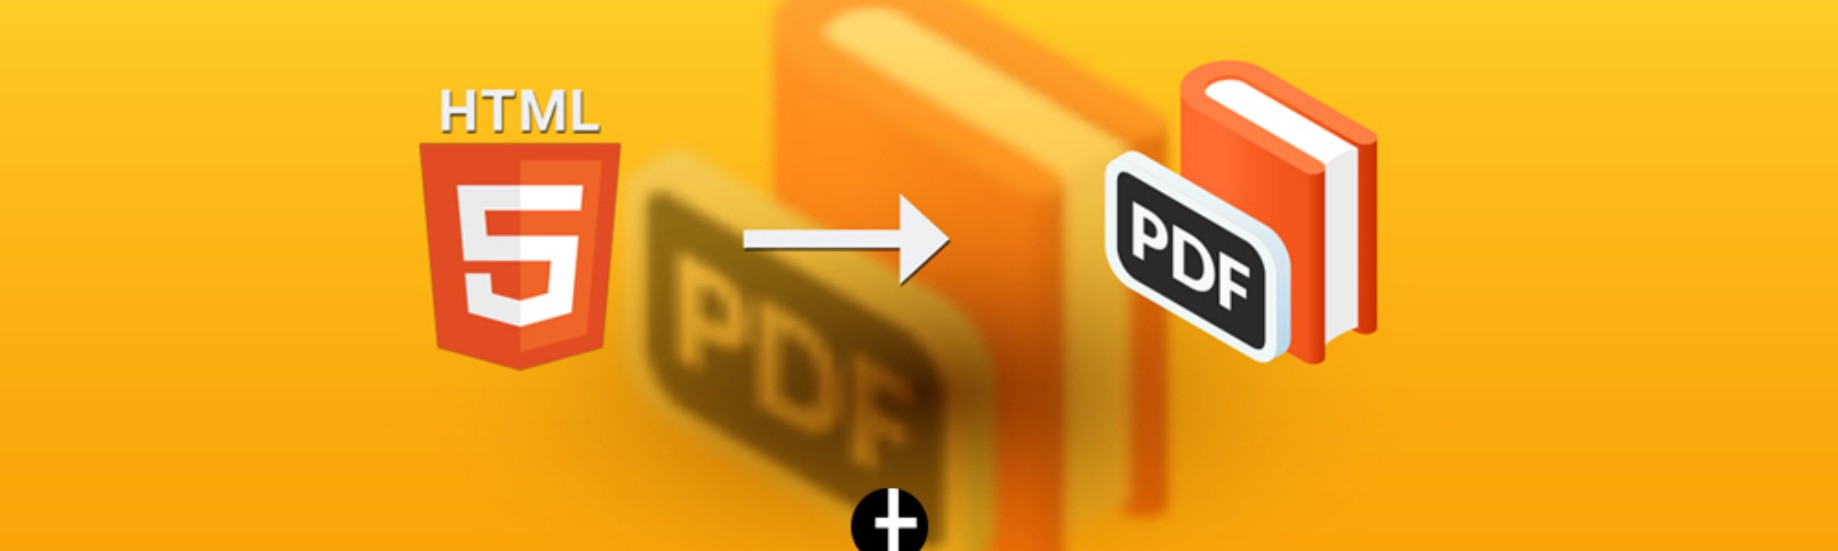 How to generate a large PDF file with PHP? - Jessica Williams - Medium